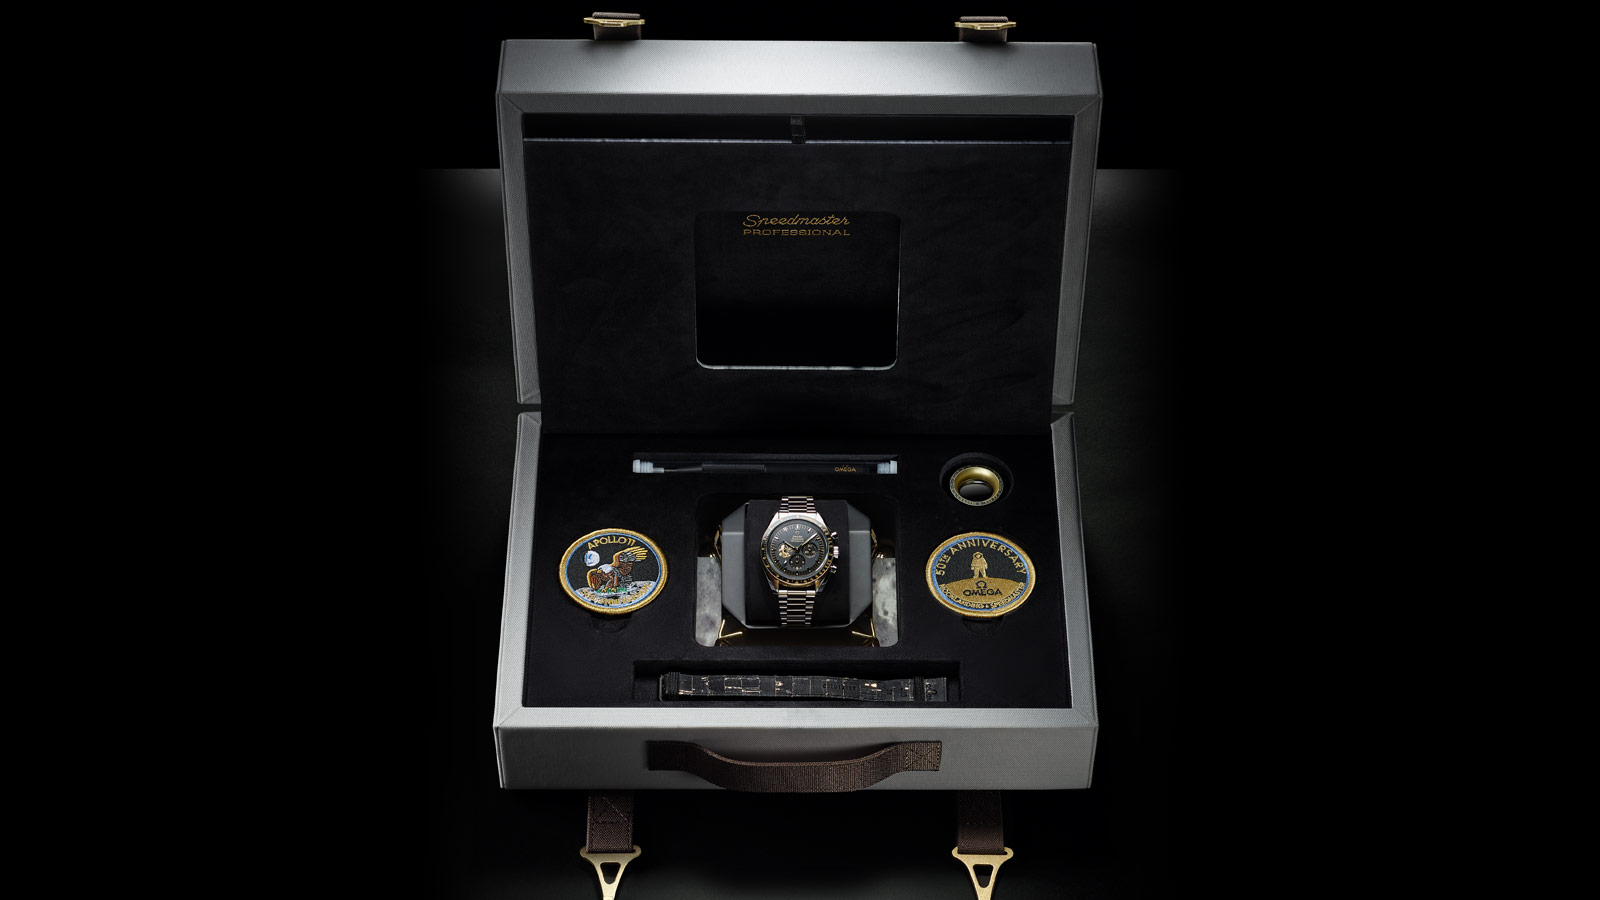 Speedmaster Moonwatch Moonwatch Anniversary Limited Series - 310.20.42.50.01.001 - Visualizzare 5